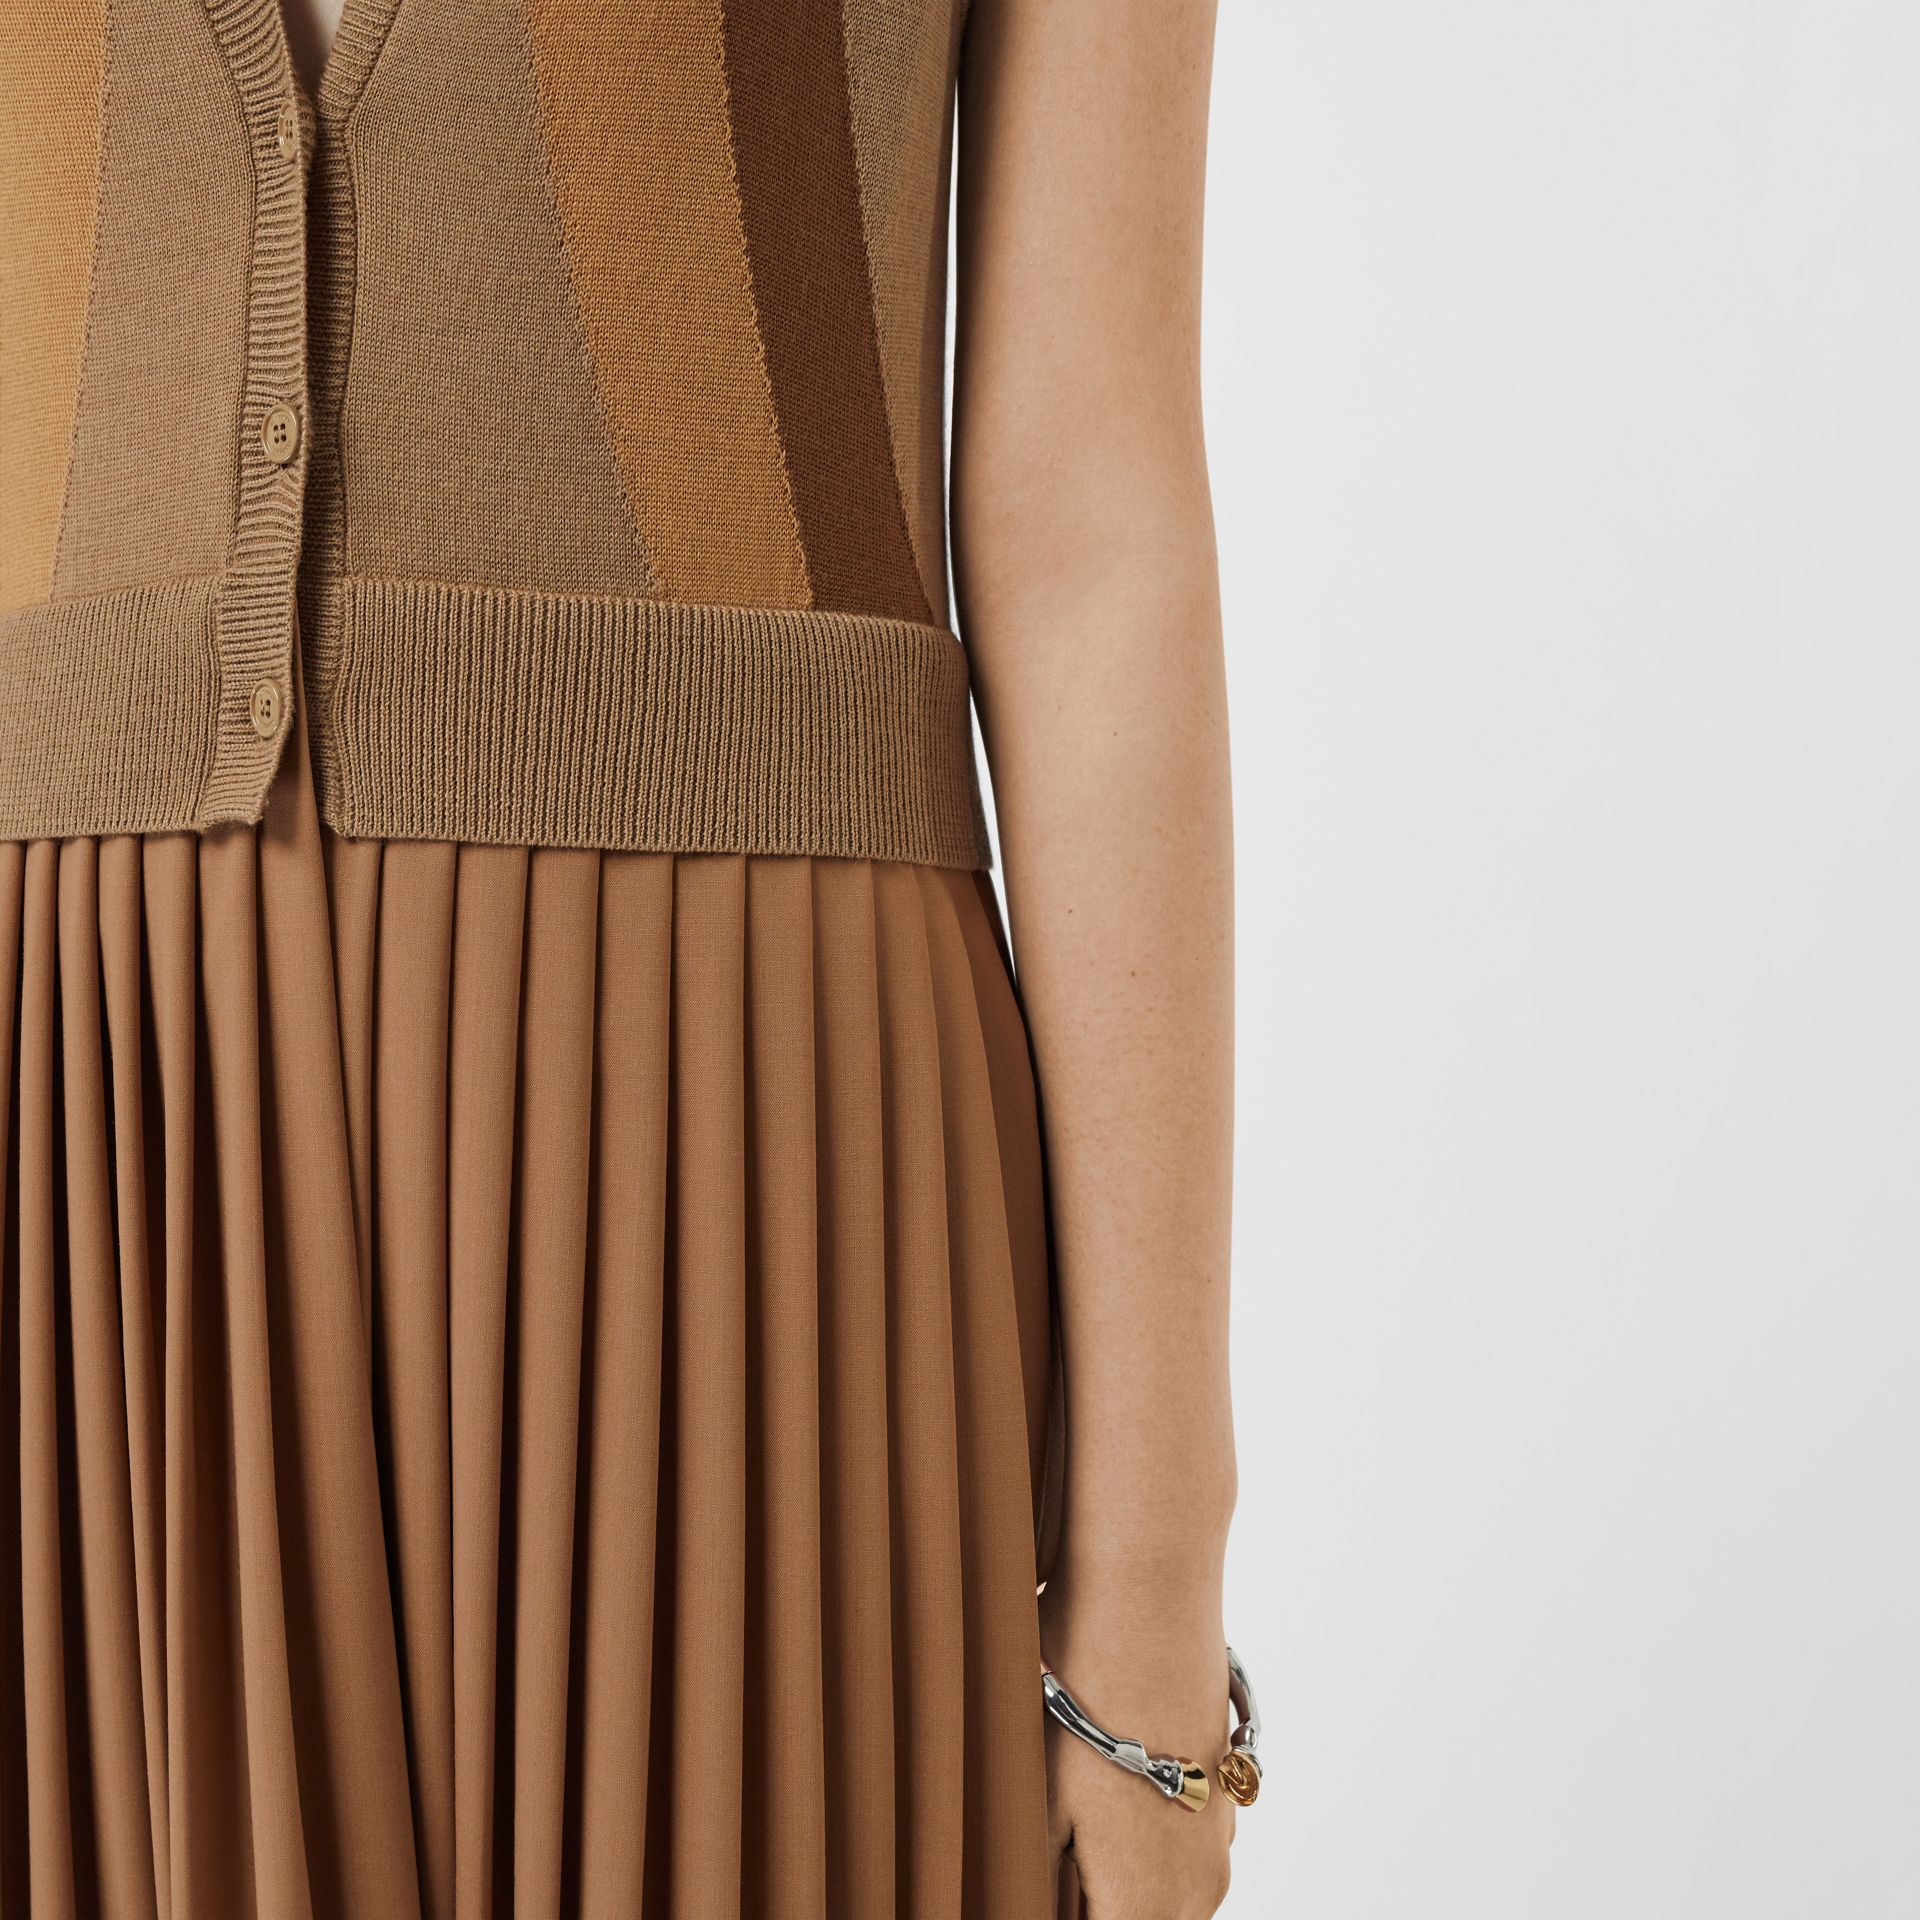 Sleeveless Knitted Wool V-neck Dress in Acorn - Women | Burberry - gallery image 4